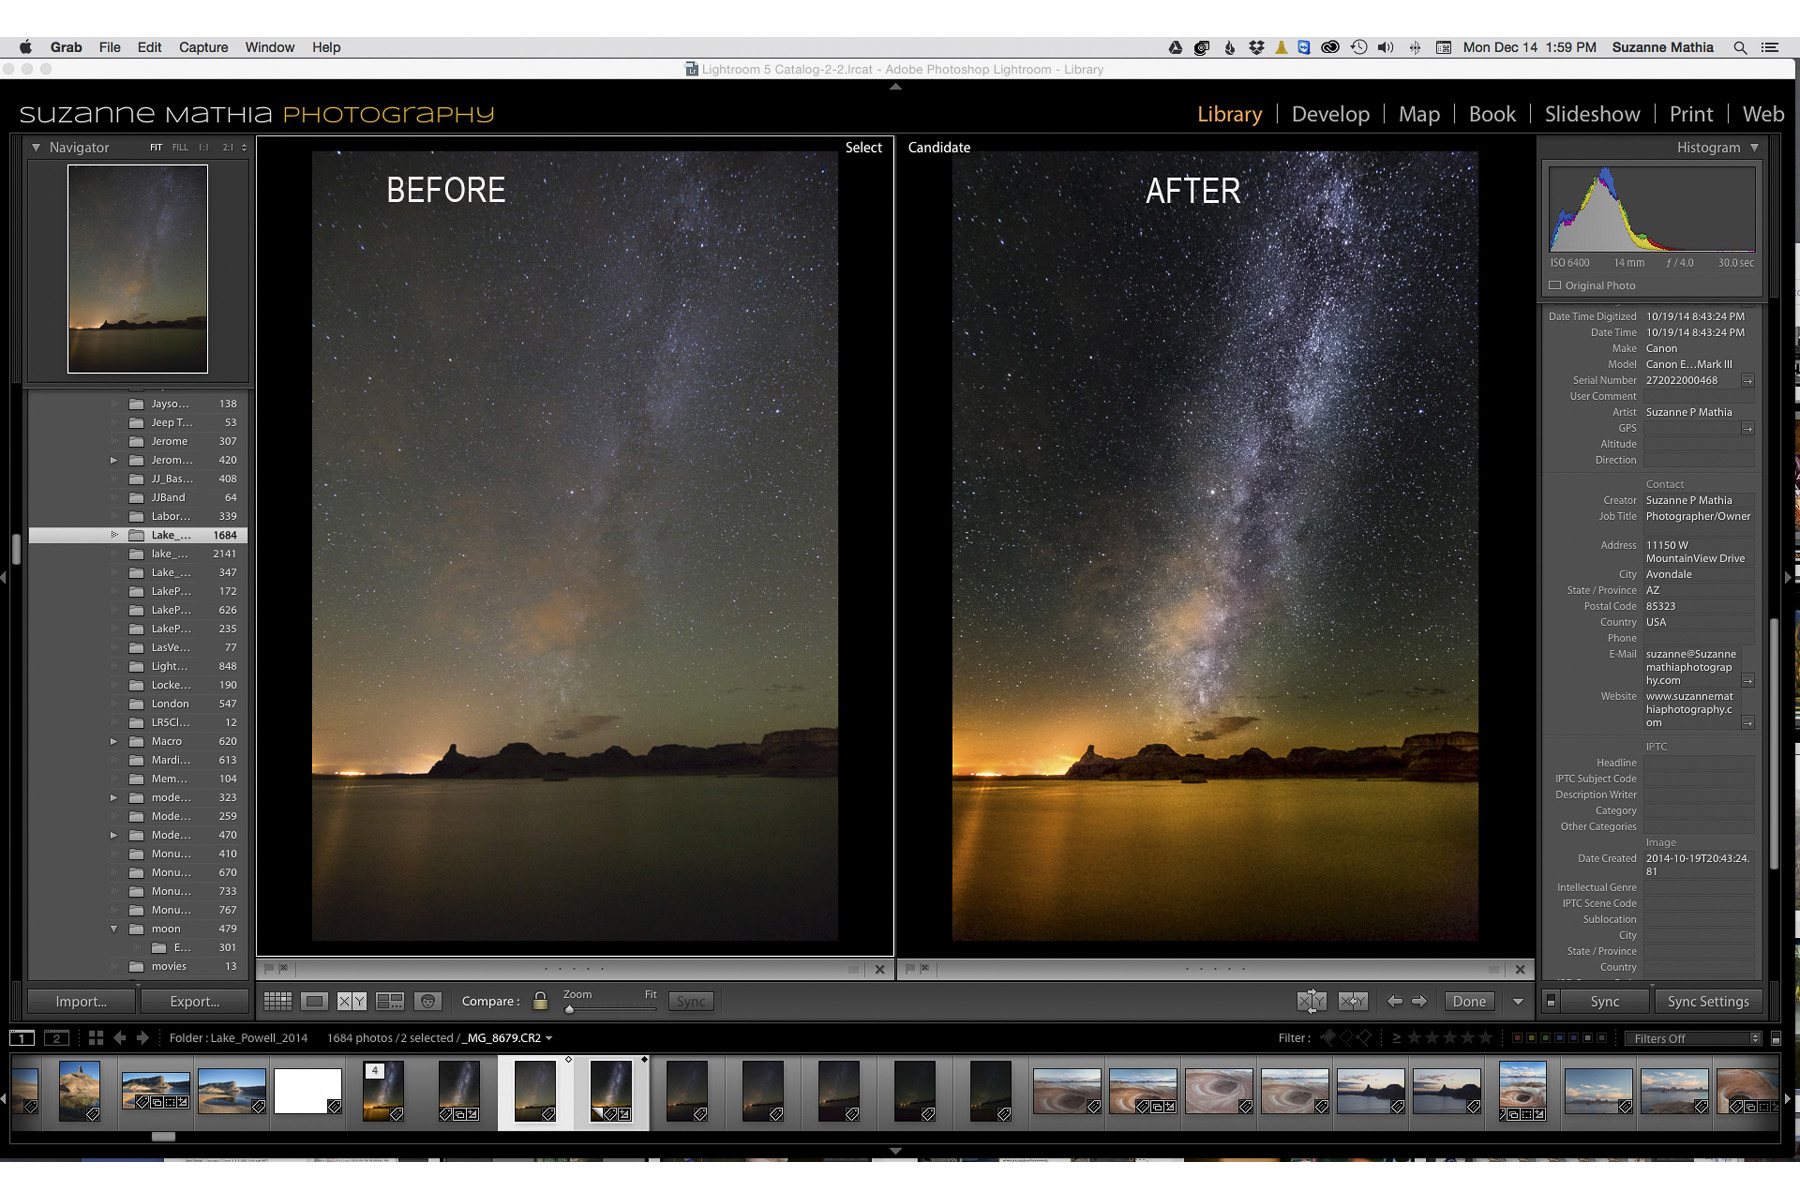 What's New In Lightroom 6.2 & CC2015.2 - YouTube